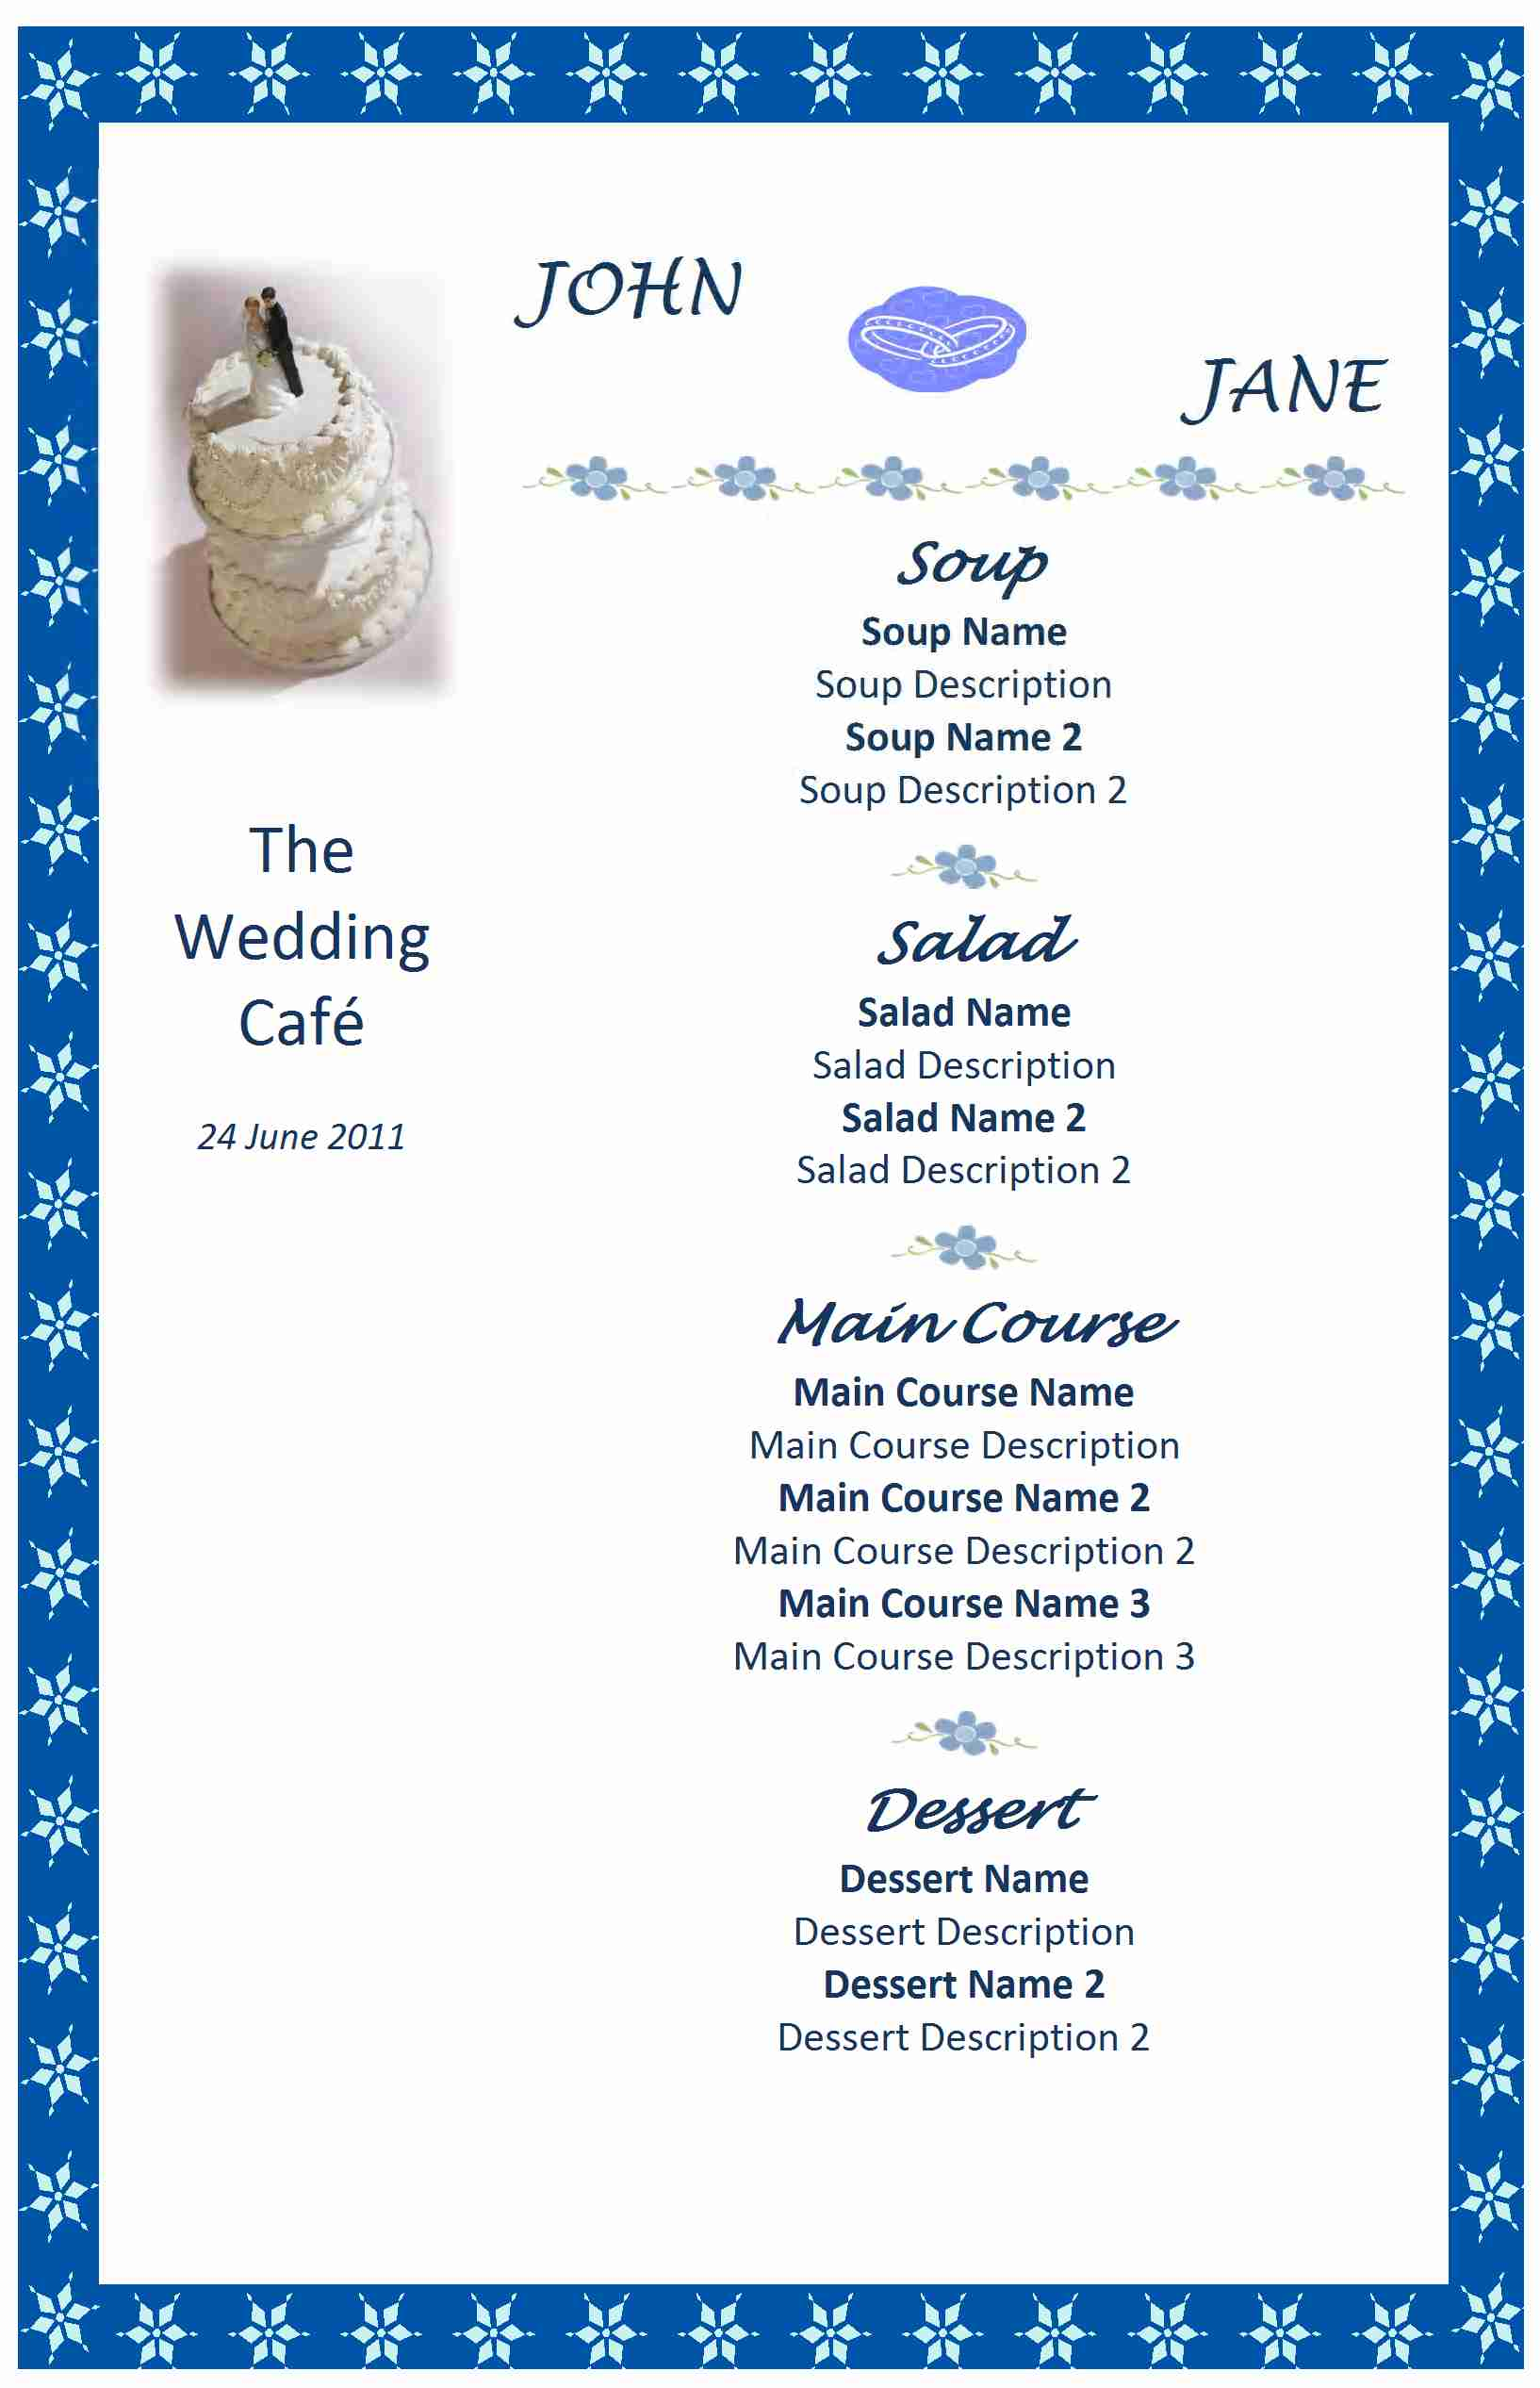 Menu word templates free word templates ms word for Wedding drink menu template free